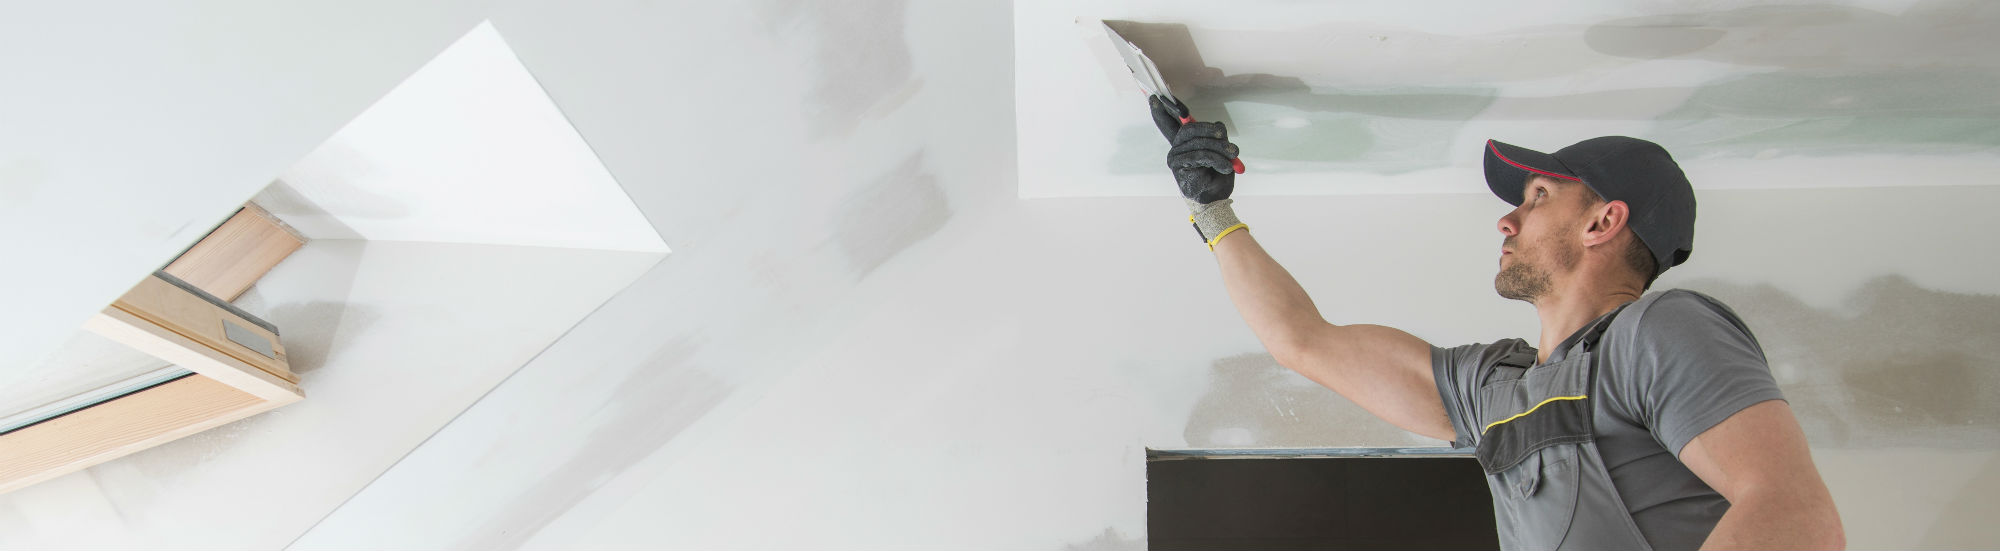 Drywall Repair & Installation Services By Best Home Remodeling